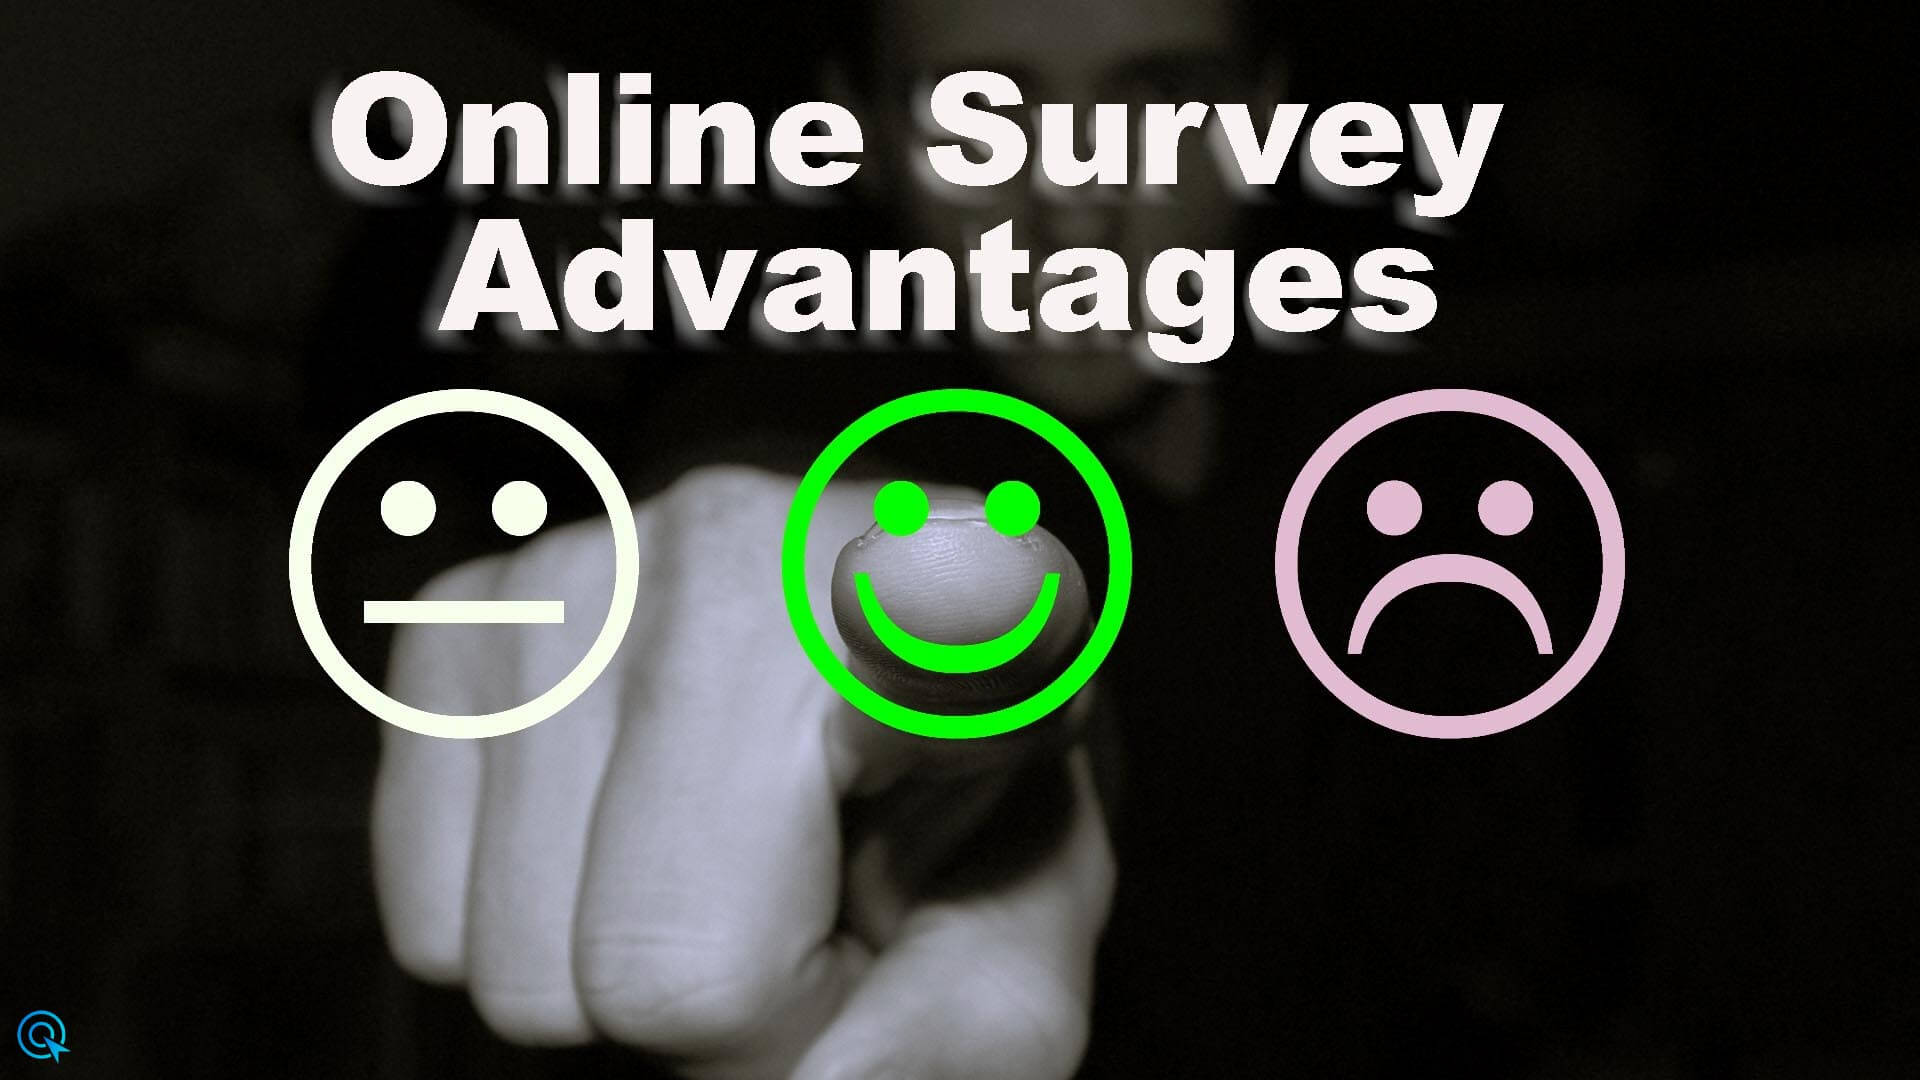 6 Advantages of using Online Survey Tool